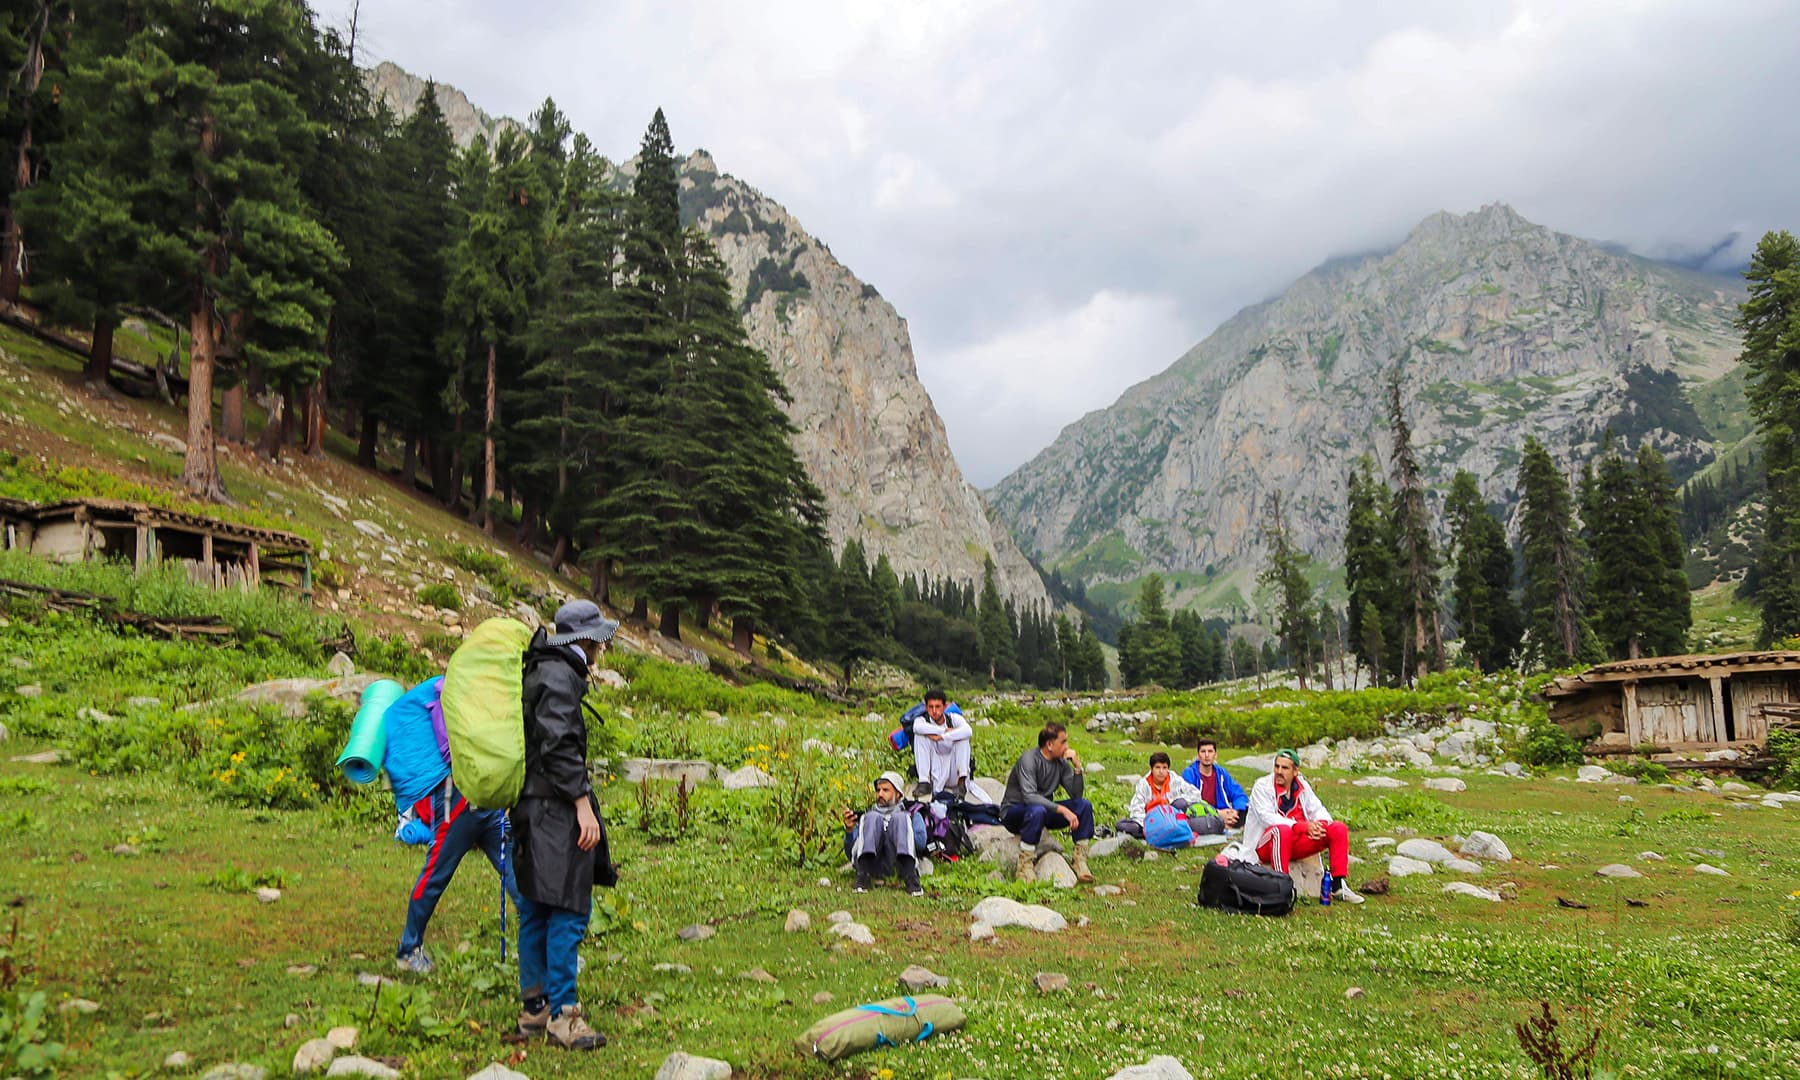 Trekkers and tourists are taking a break in Janshai meadows.